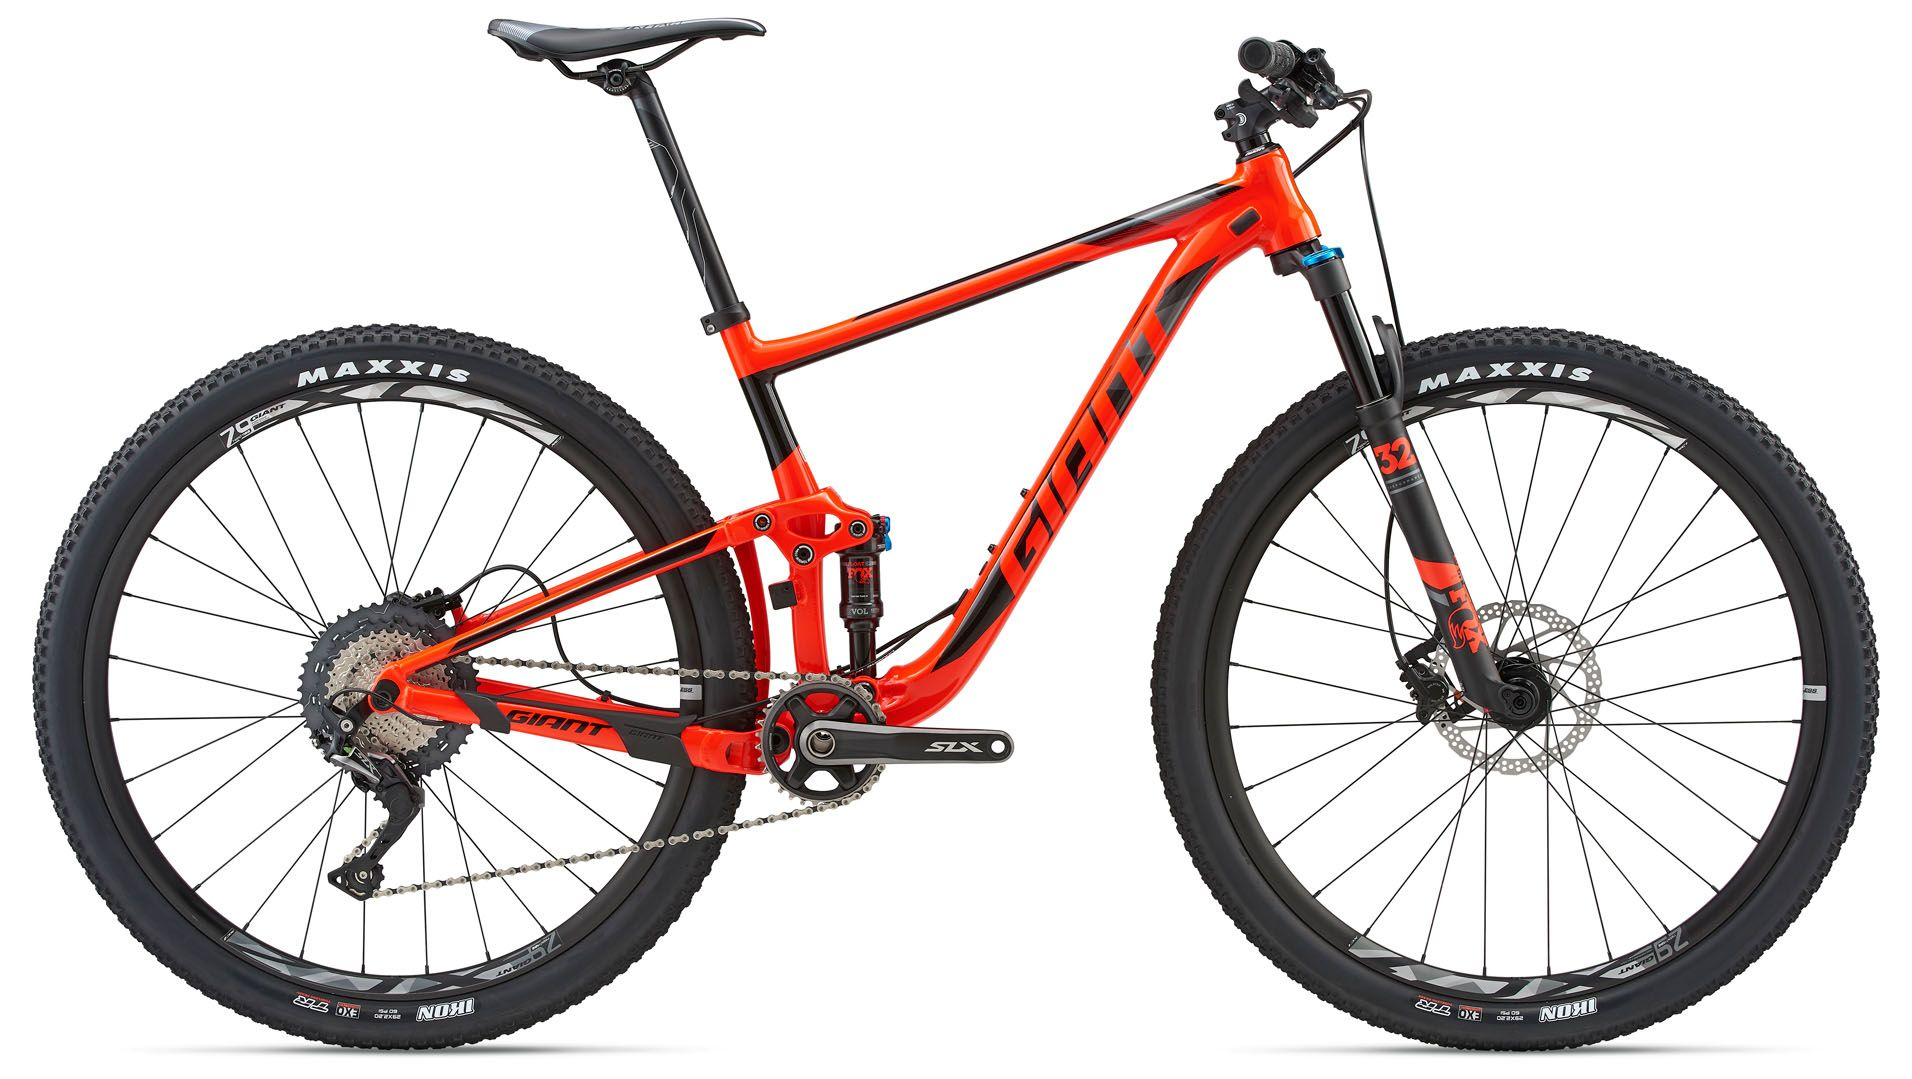 Велосипед Giant Anthem 29er 2 2018 велосипед giant talon 29er 2 blk 2014